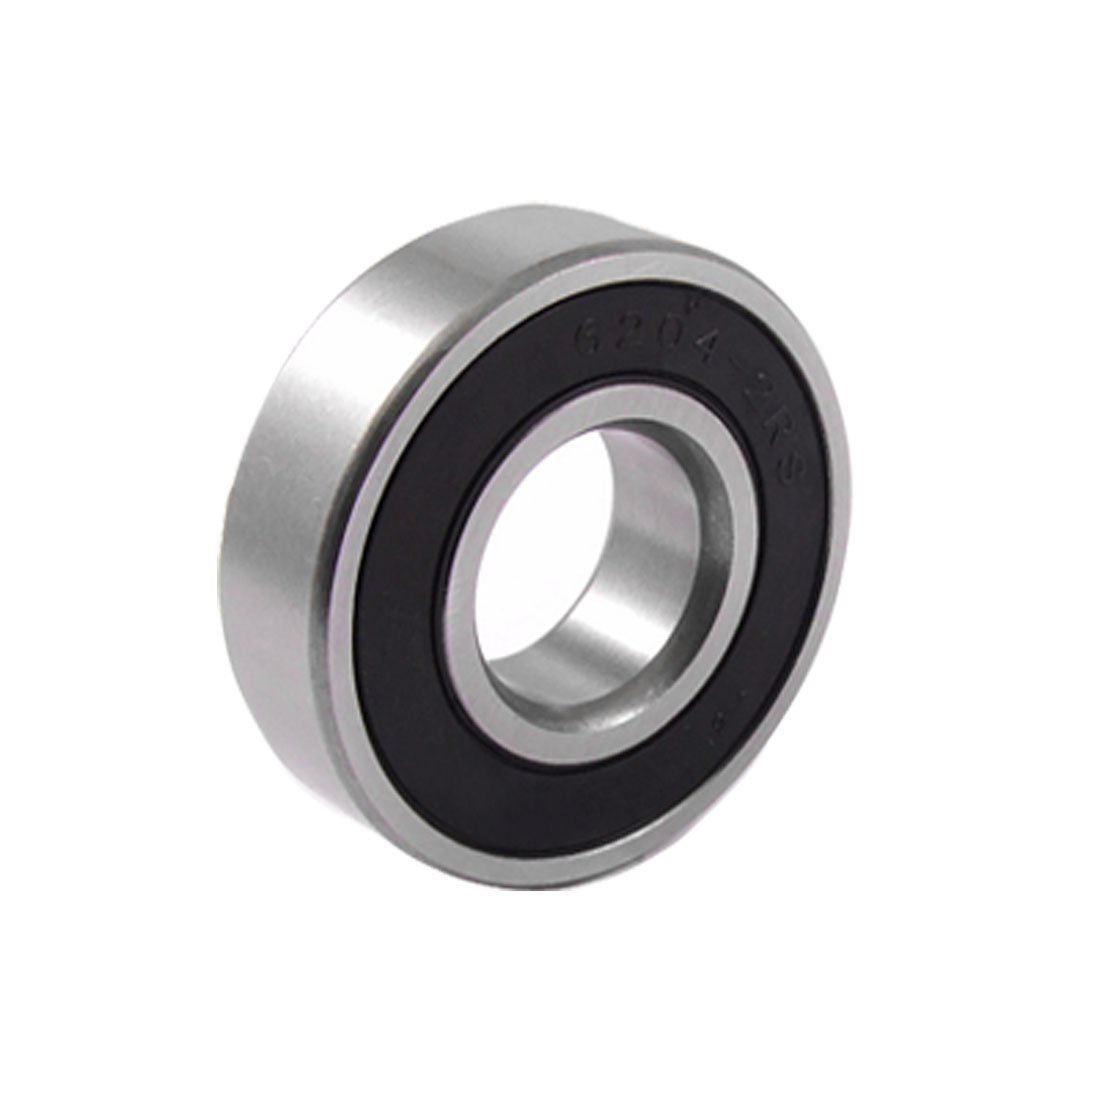 все цены на High Quality 6204-2RS 6204 2RS Shield Sealed Ball Bearing 20 x 47 x 14mm онлайн